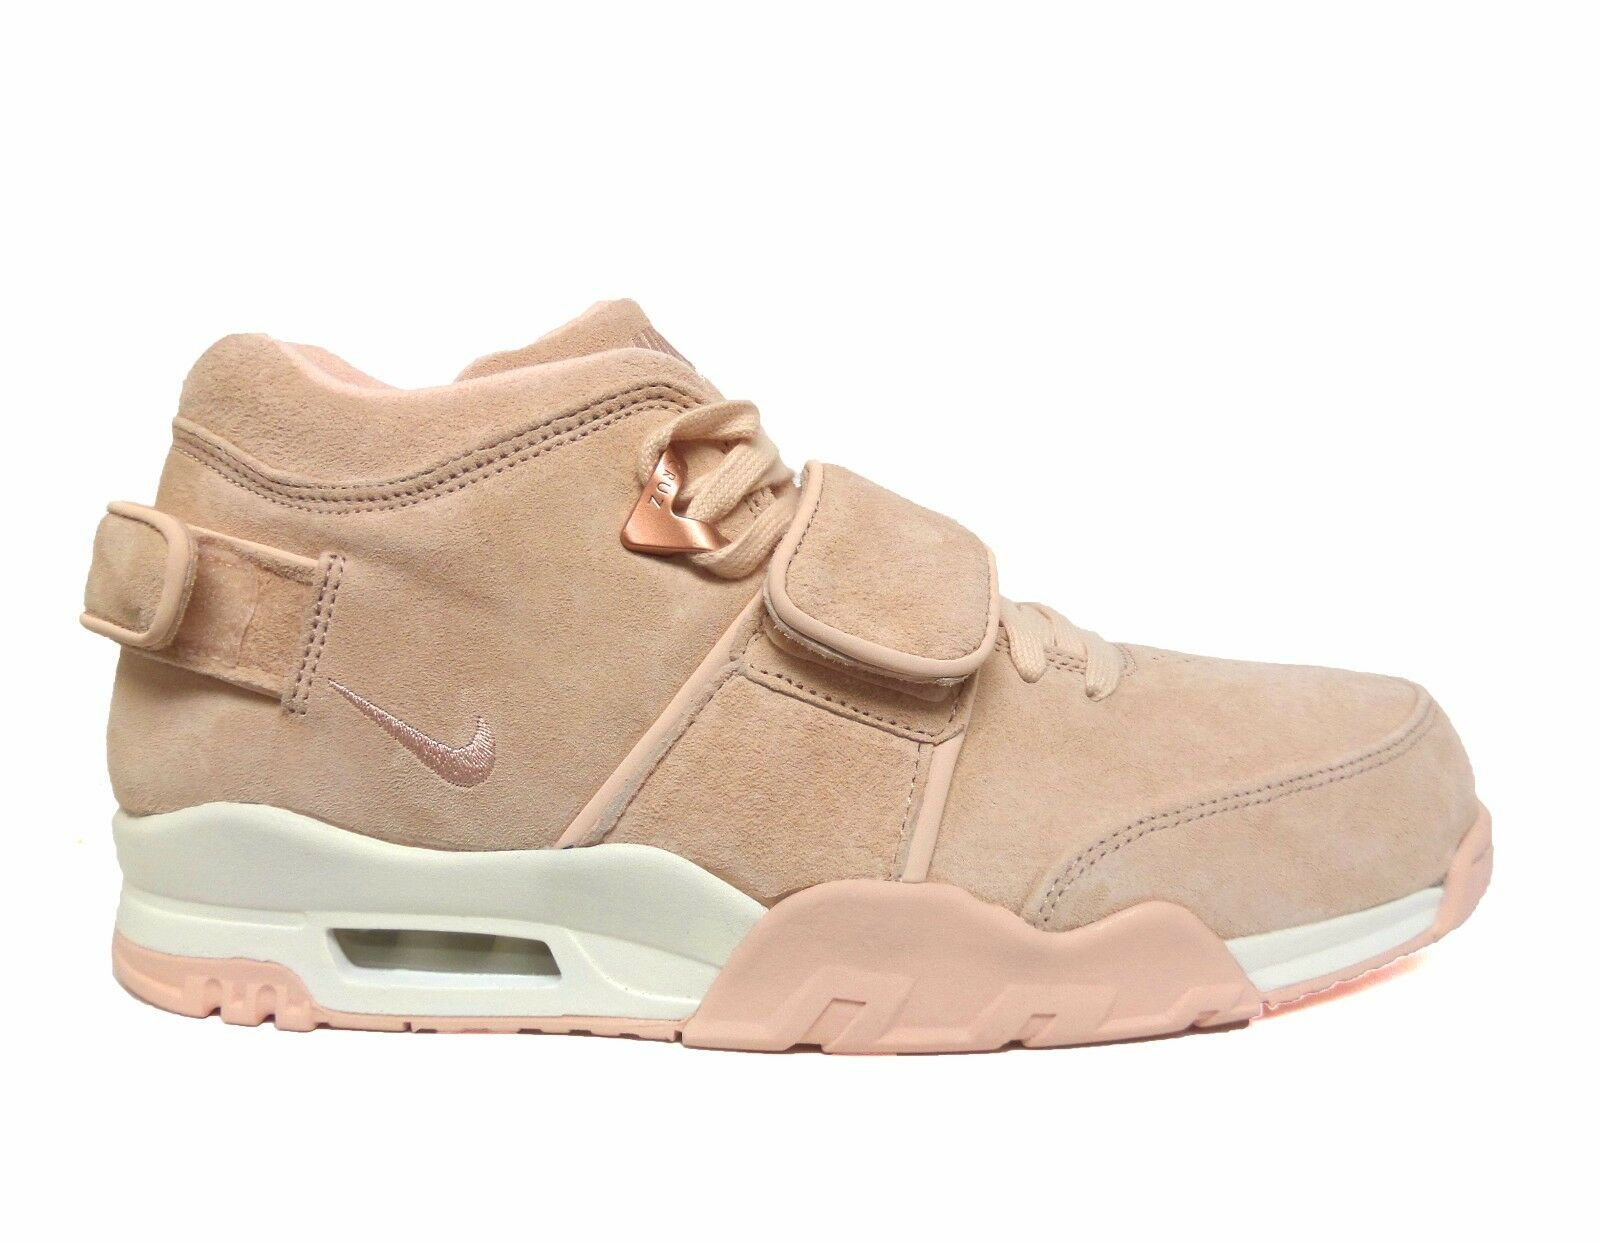 Nike Men's Air Trainer V. CRUZ QS Suede Shoes Orange Quartz 821955-800 b Great discount New shoes for men and women, limited time discount